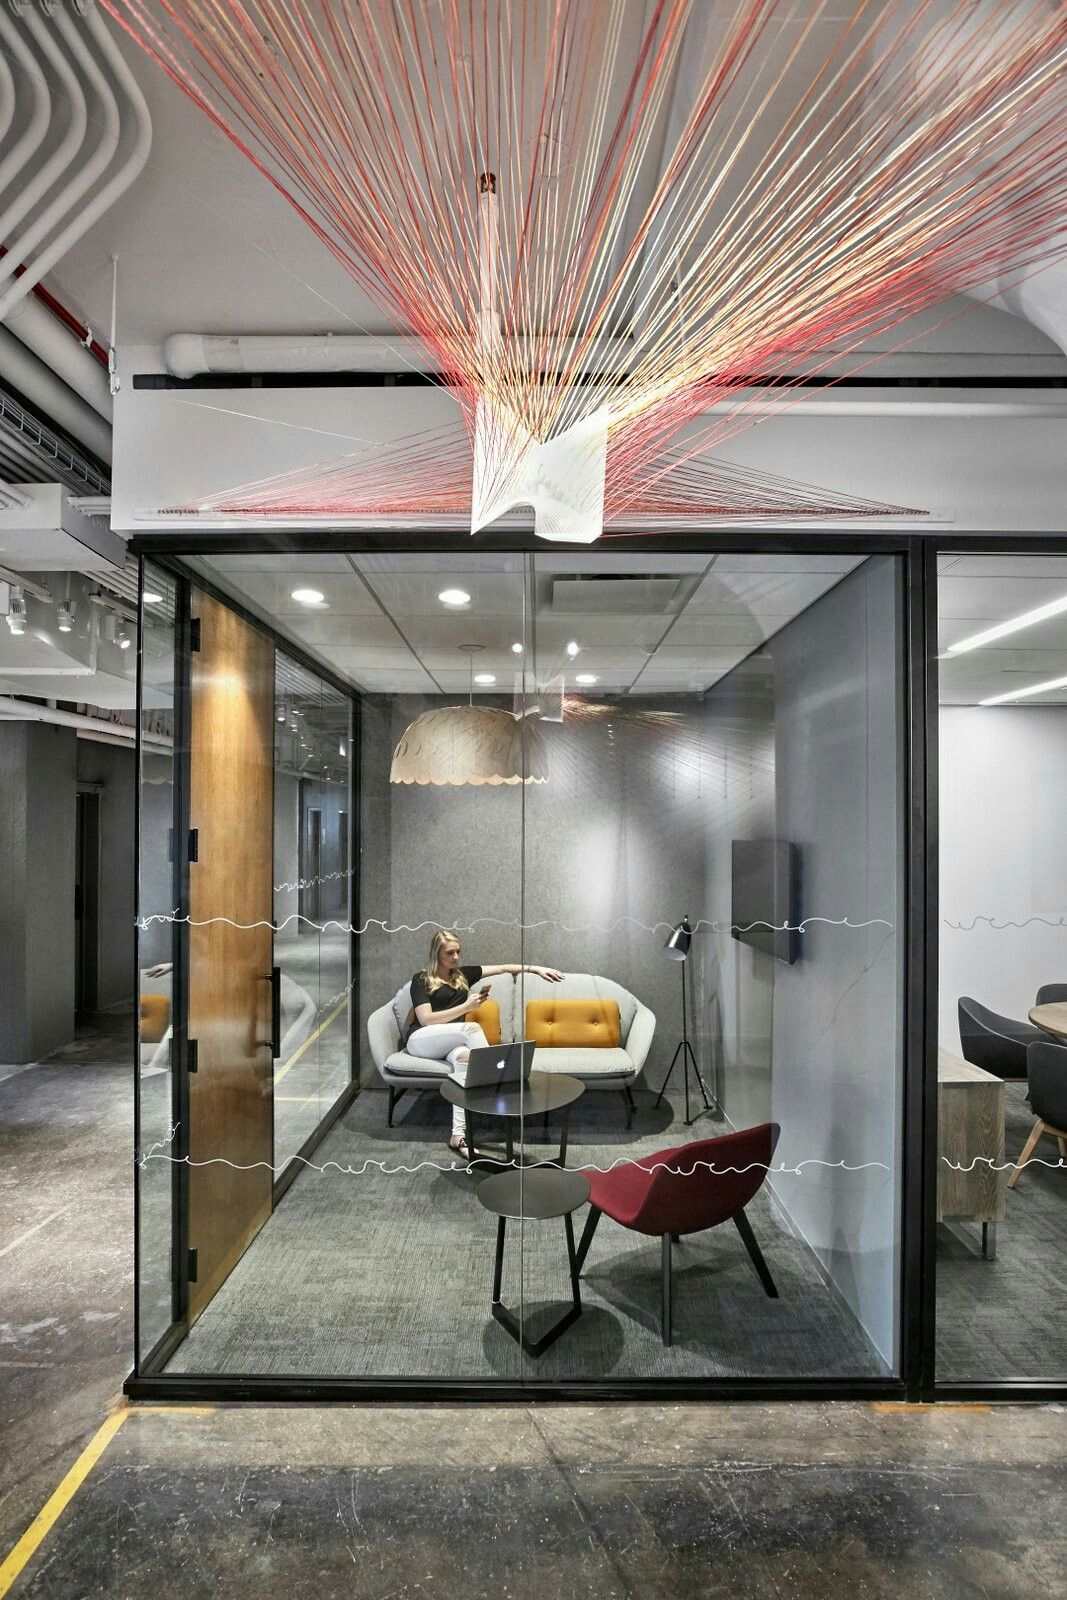 office snapshots. Office Snapshots. Etsy Via Snapshots | City Lighting Products Commercial Https://